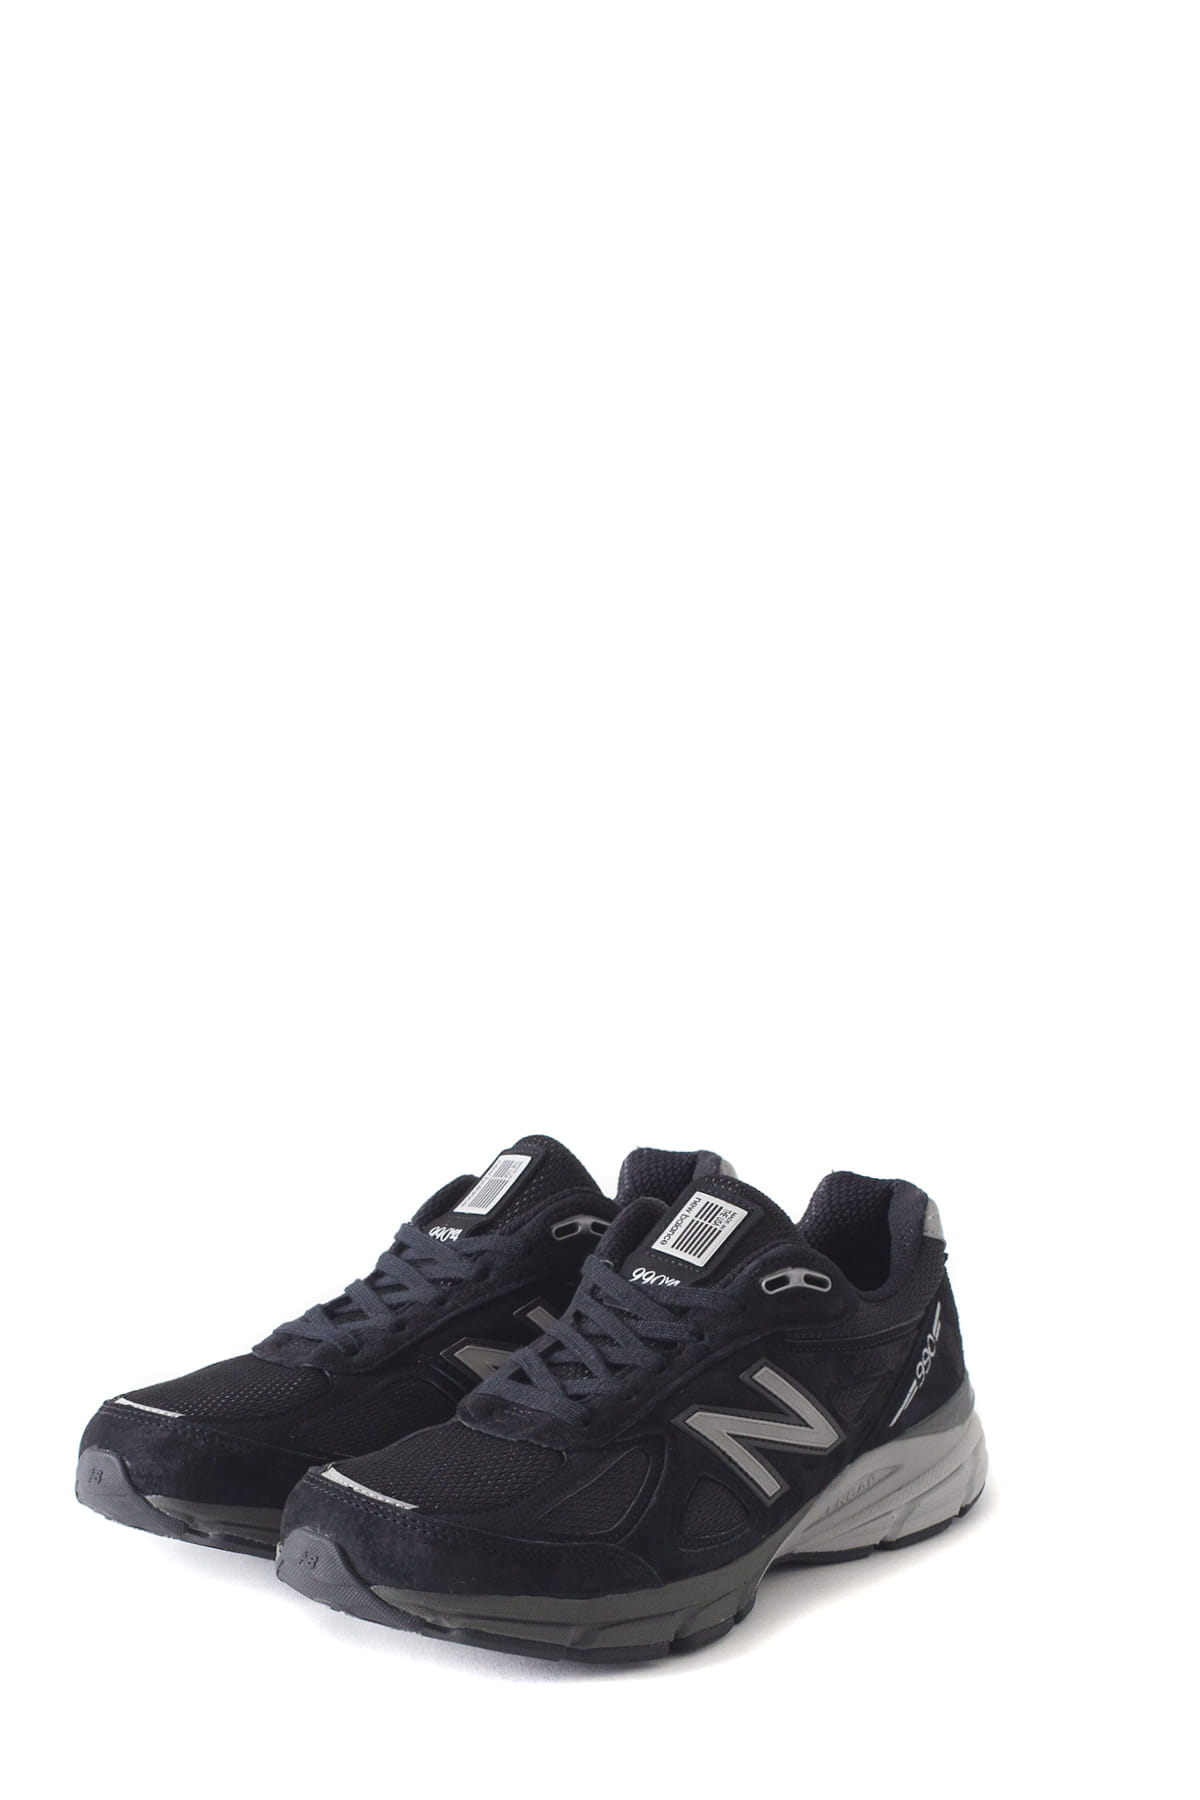 New Balance : M990BK4 (Black)